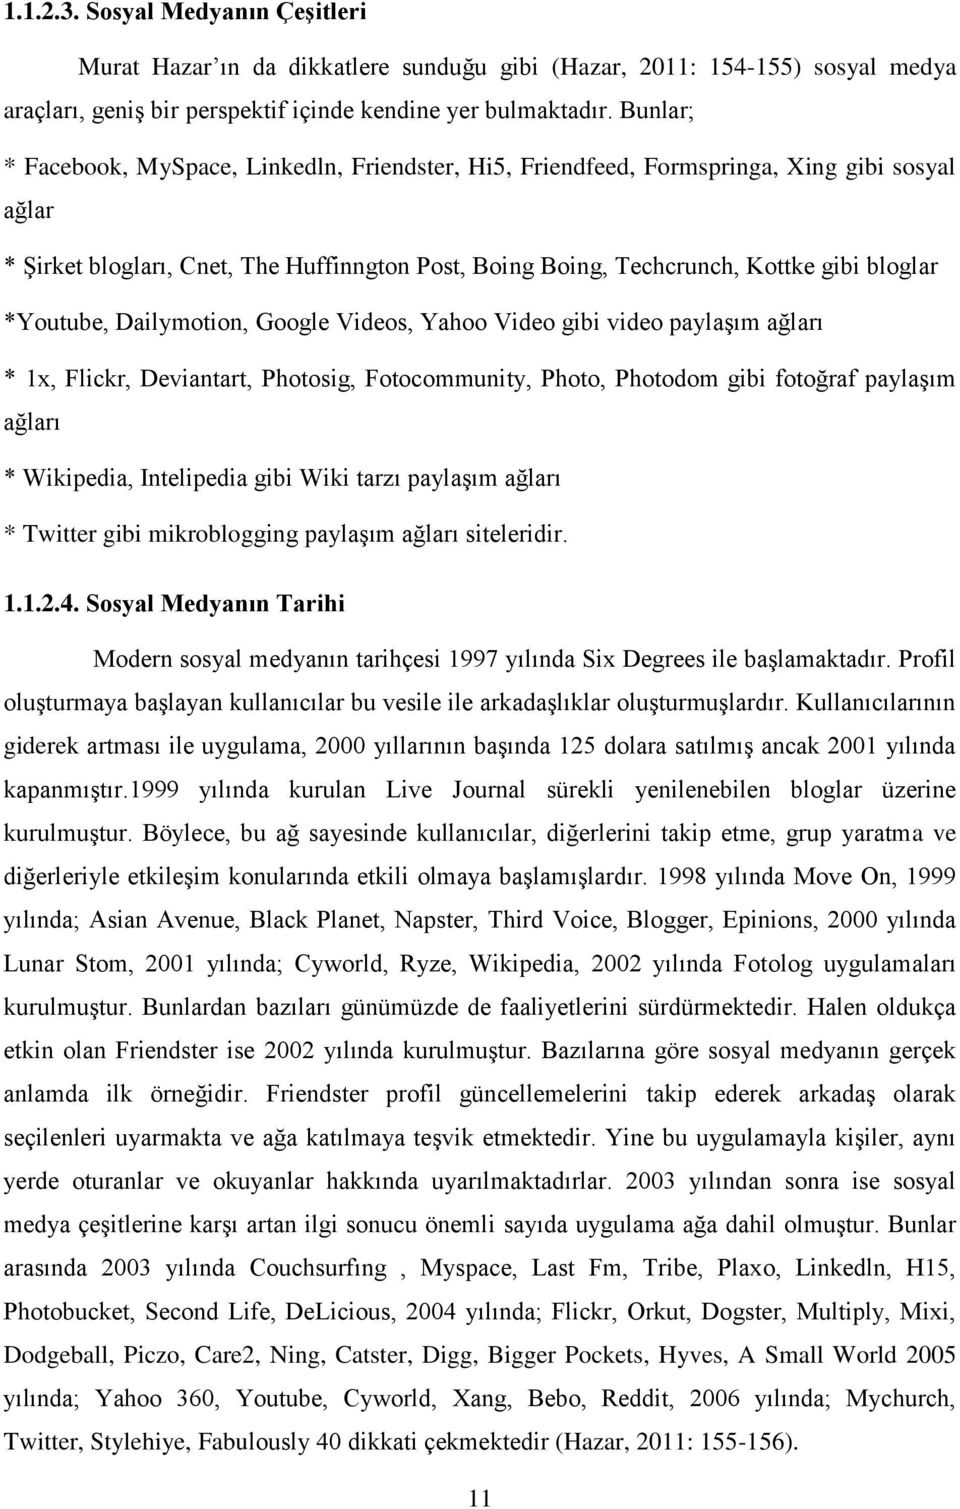 *Youtube, Dailymotion, Google Videos, Yahoo Video gibi video paylaşım ağları * 1x, Flickr, Deviantart, Photosig, Fotocommunity, Photo, Photodom gibi fotoğraf paylaşım ağları * Wikipedia, Intelipedia